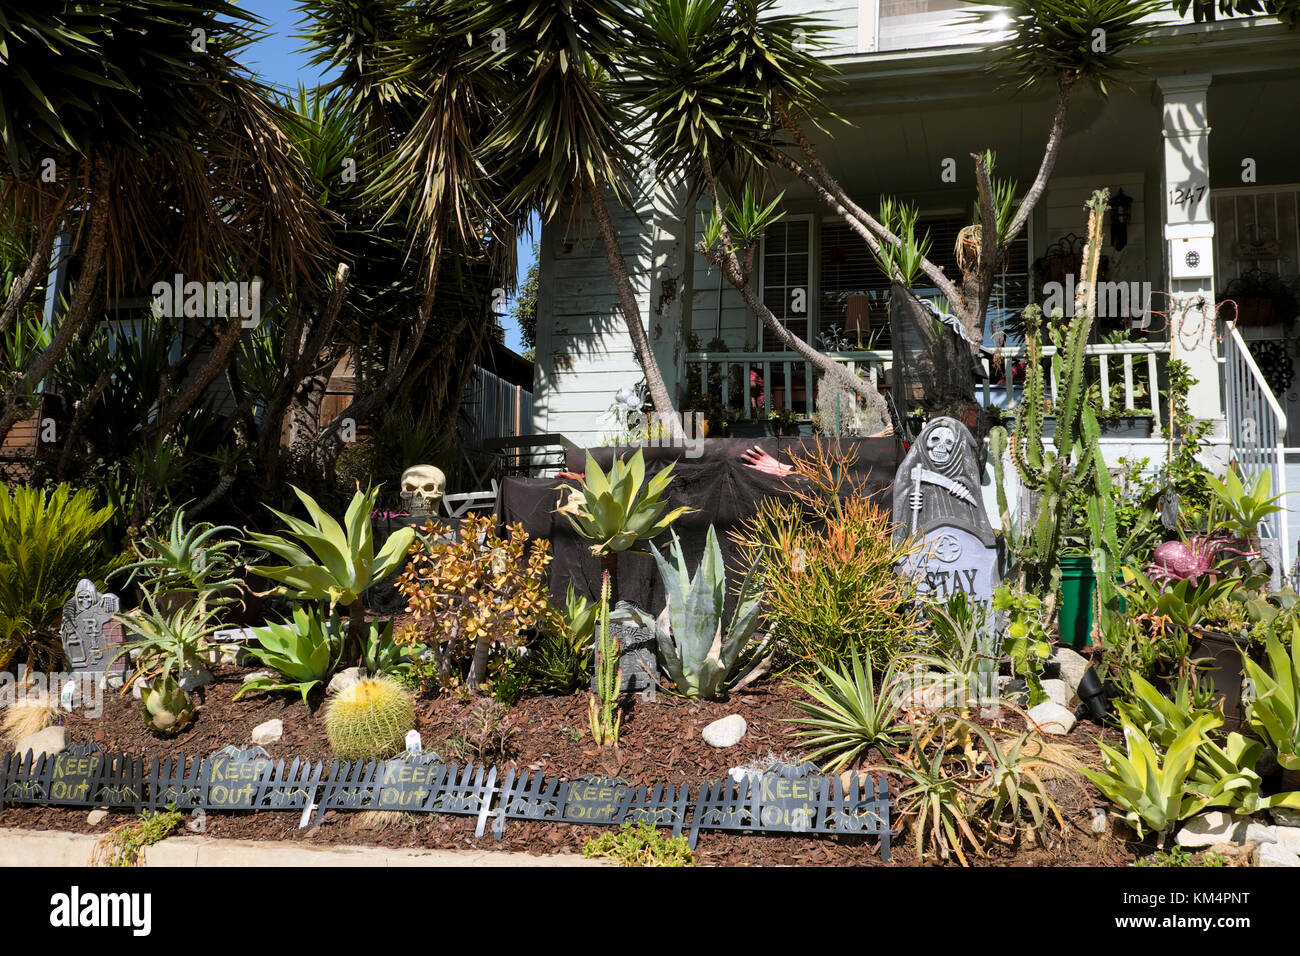 Front yard of a house decorated for Halloween in a garden with cacti and yucca plants in Echo Park, Los Angeles - Stock Image